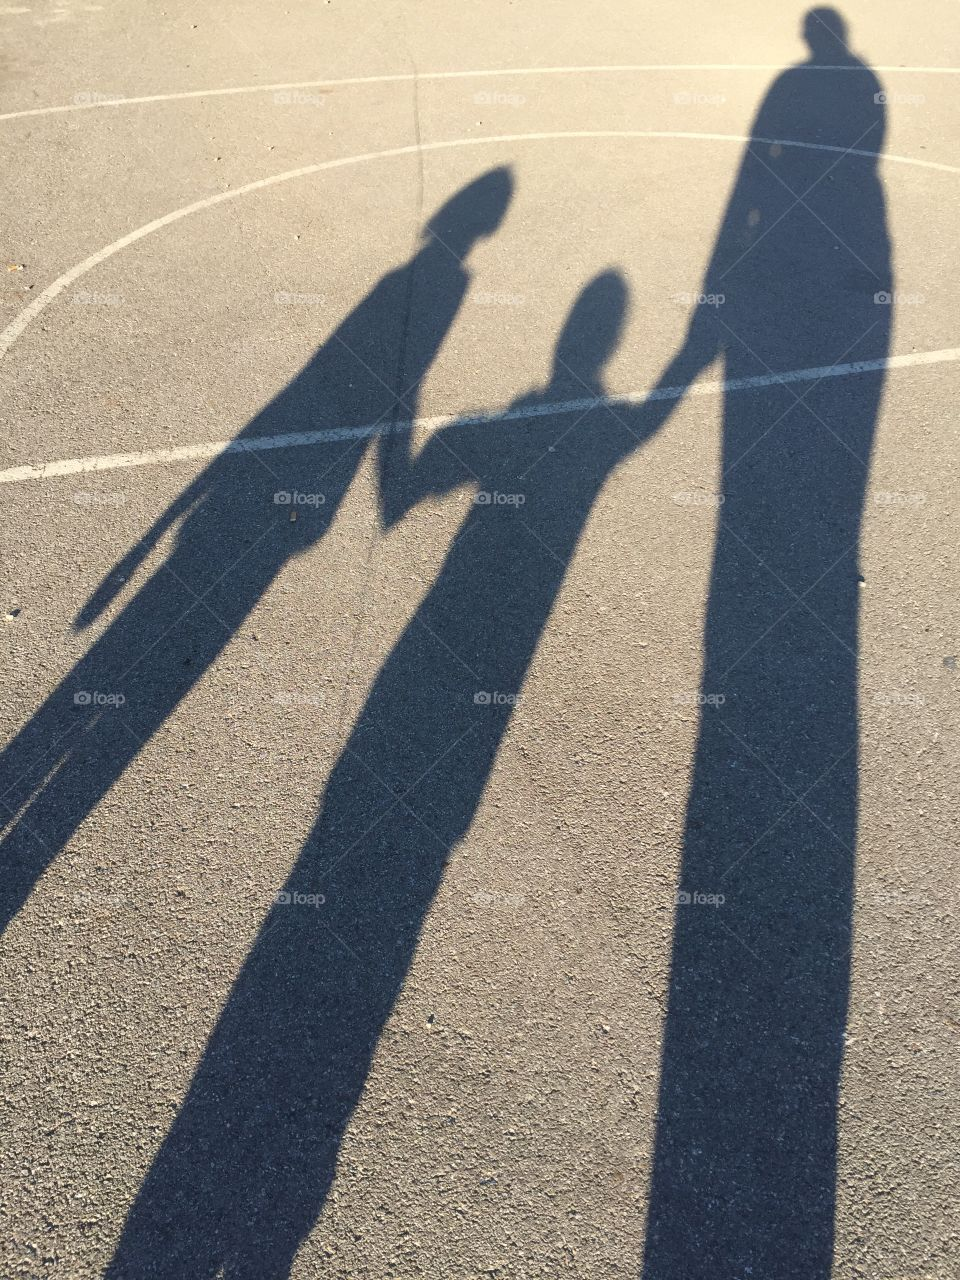 Shadow of people standing together